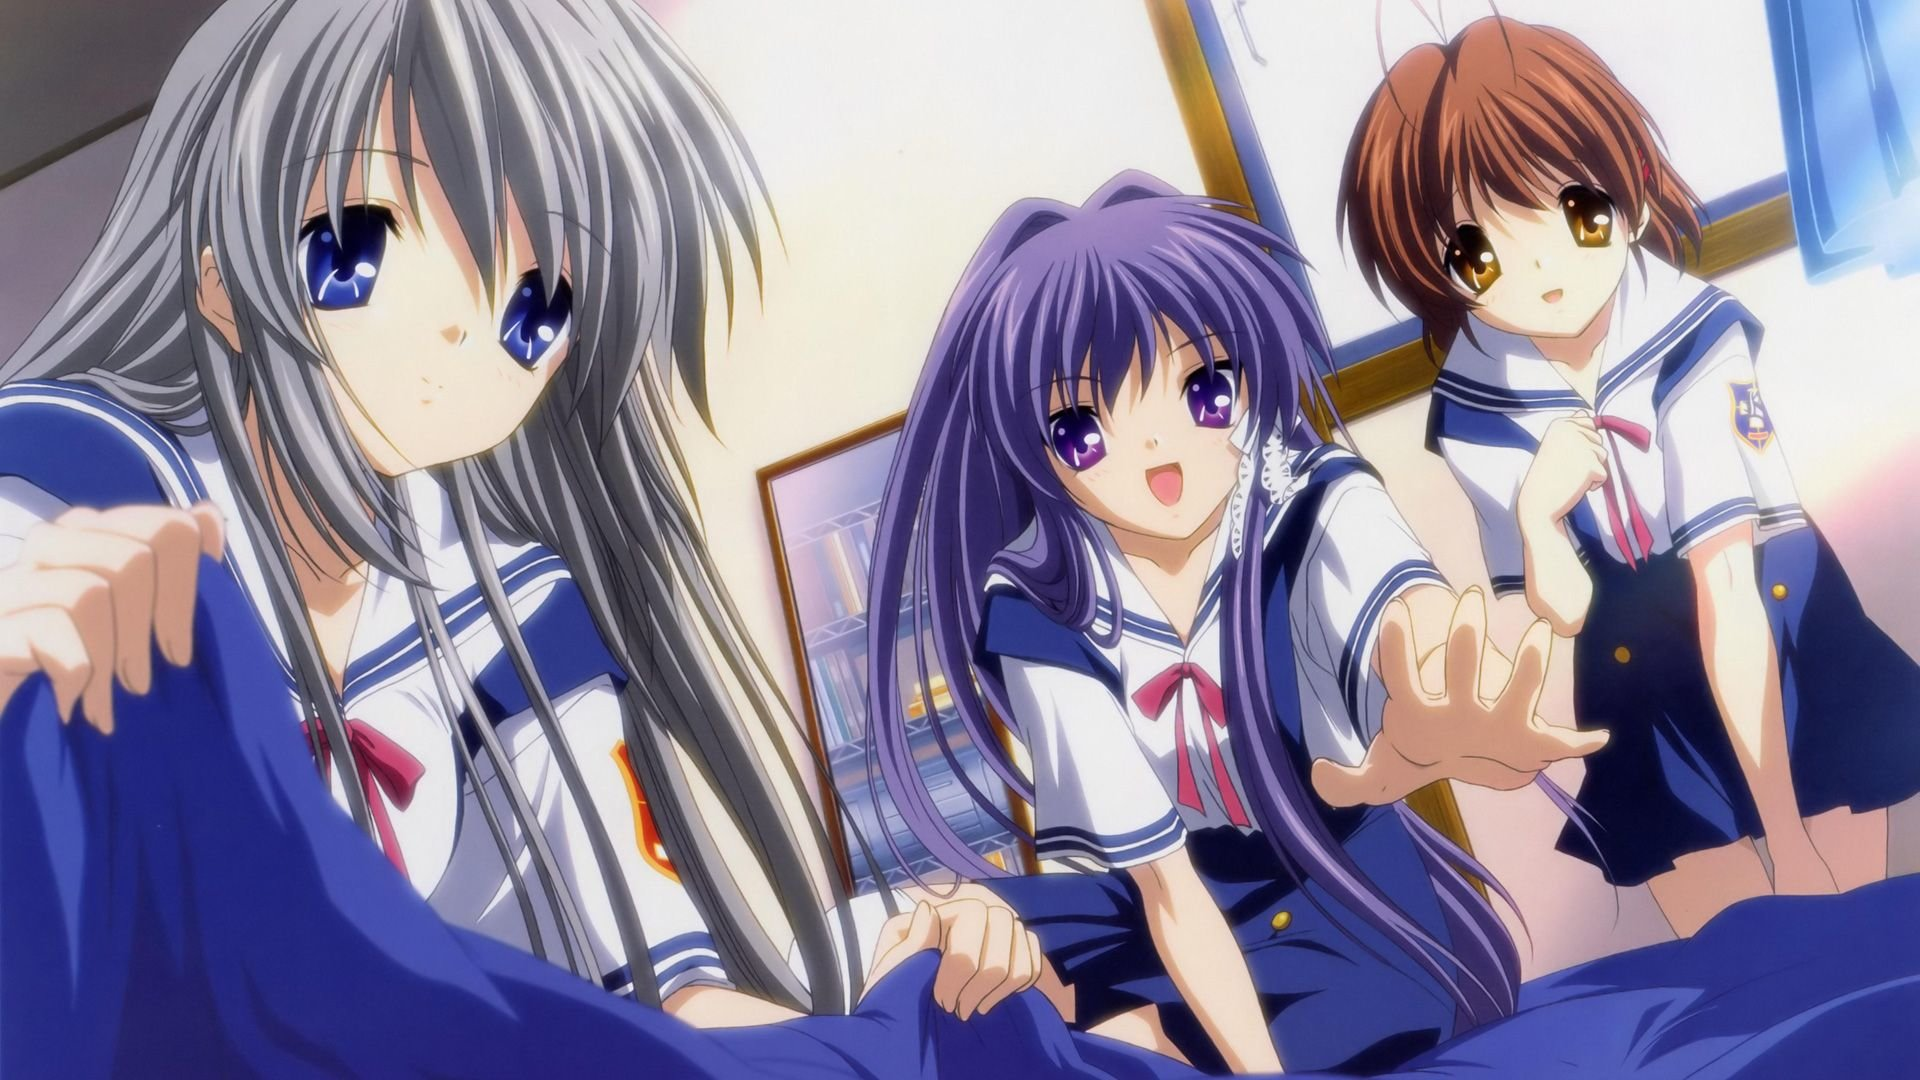 Free download Clannad wallpaper ID:316694 full hd 1920x1080 for computer